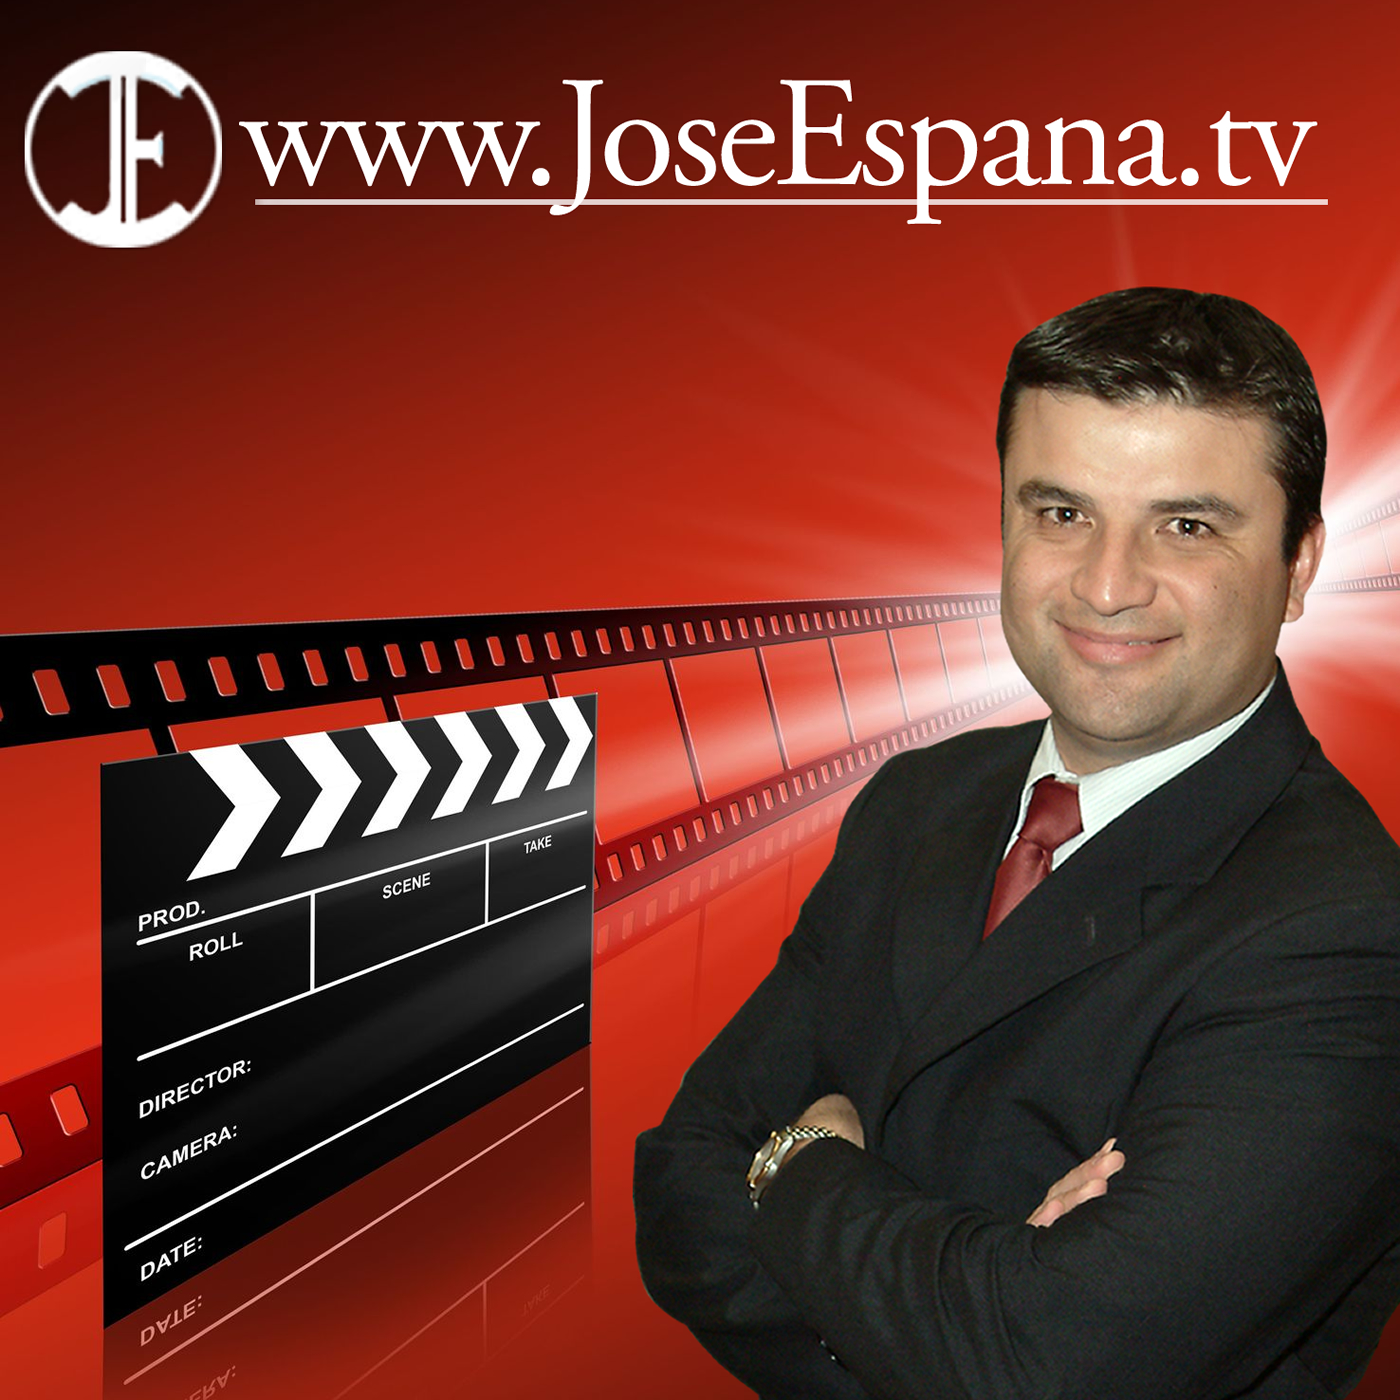 JoseEspana.TV